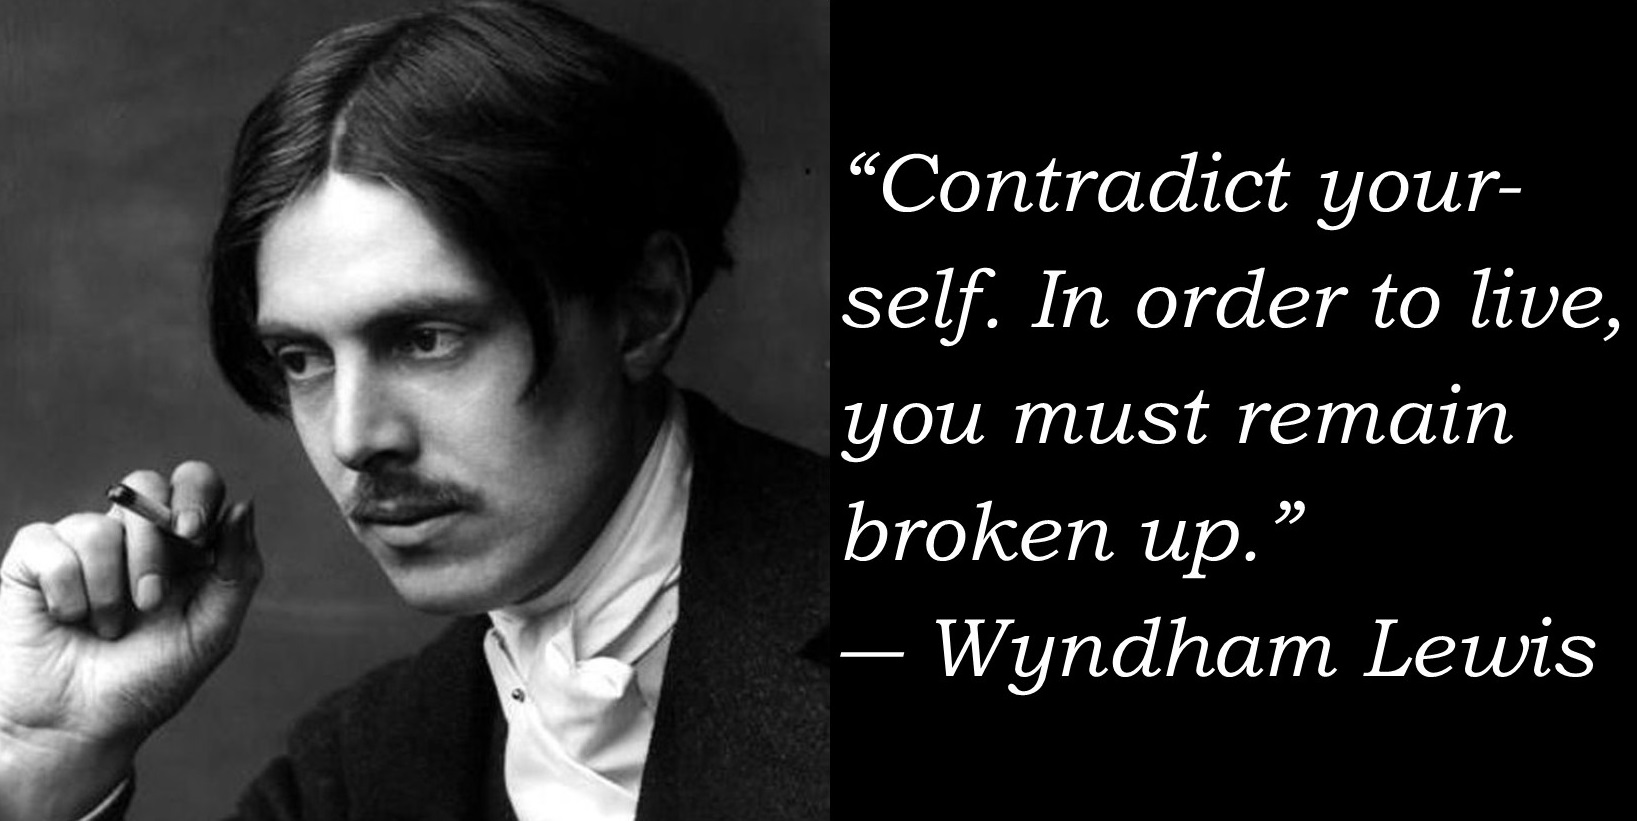 """Contradict your- self. In order to live, you must remain broken up."" — https://inspirational.ly"